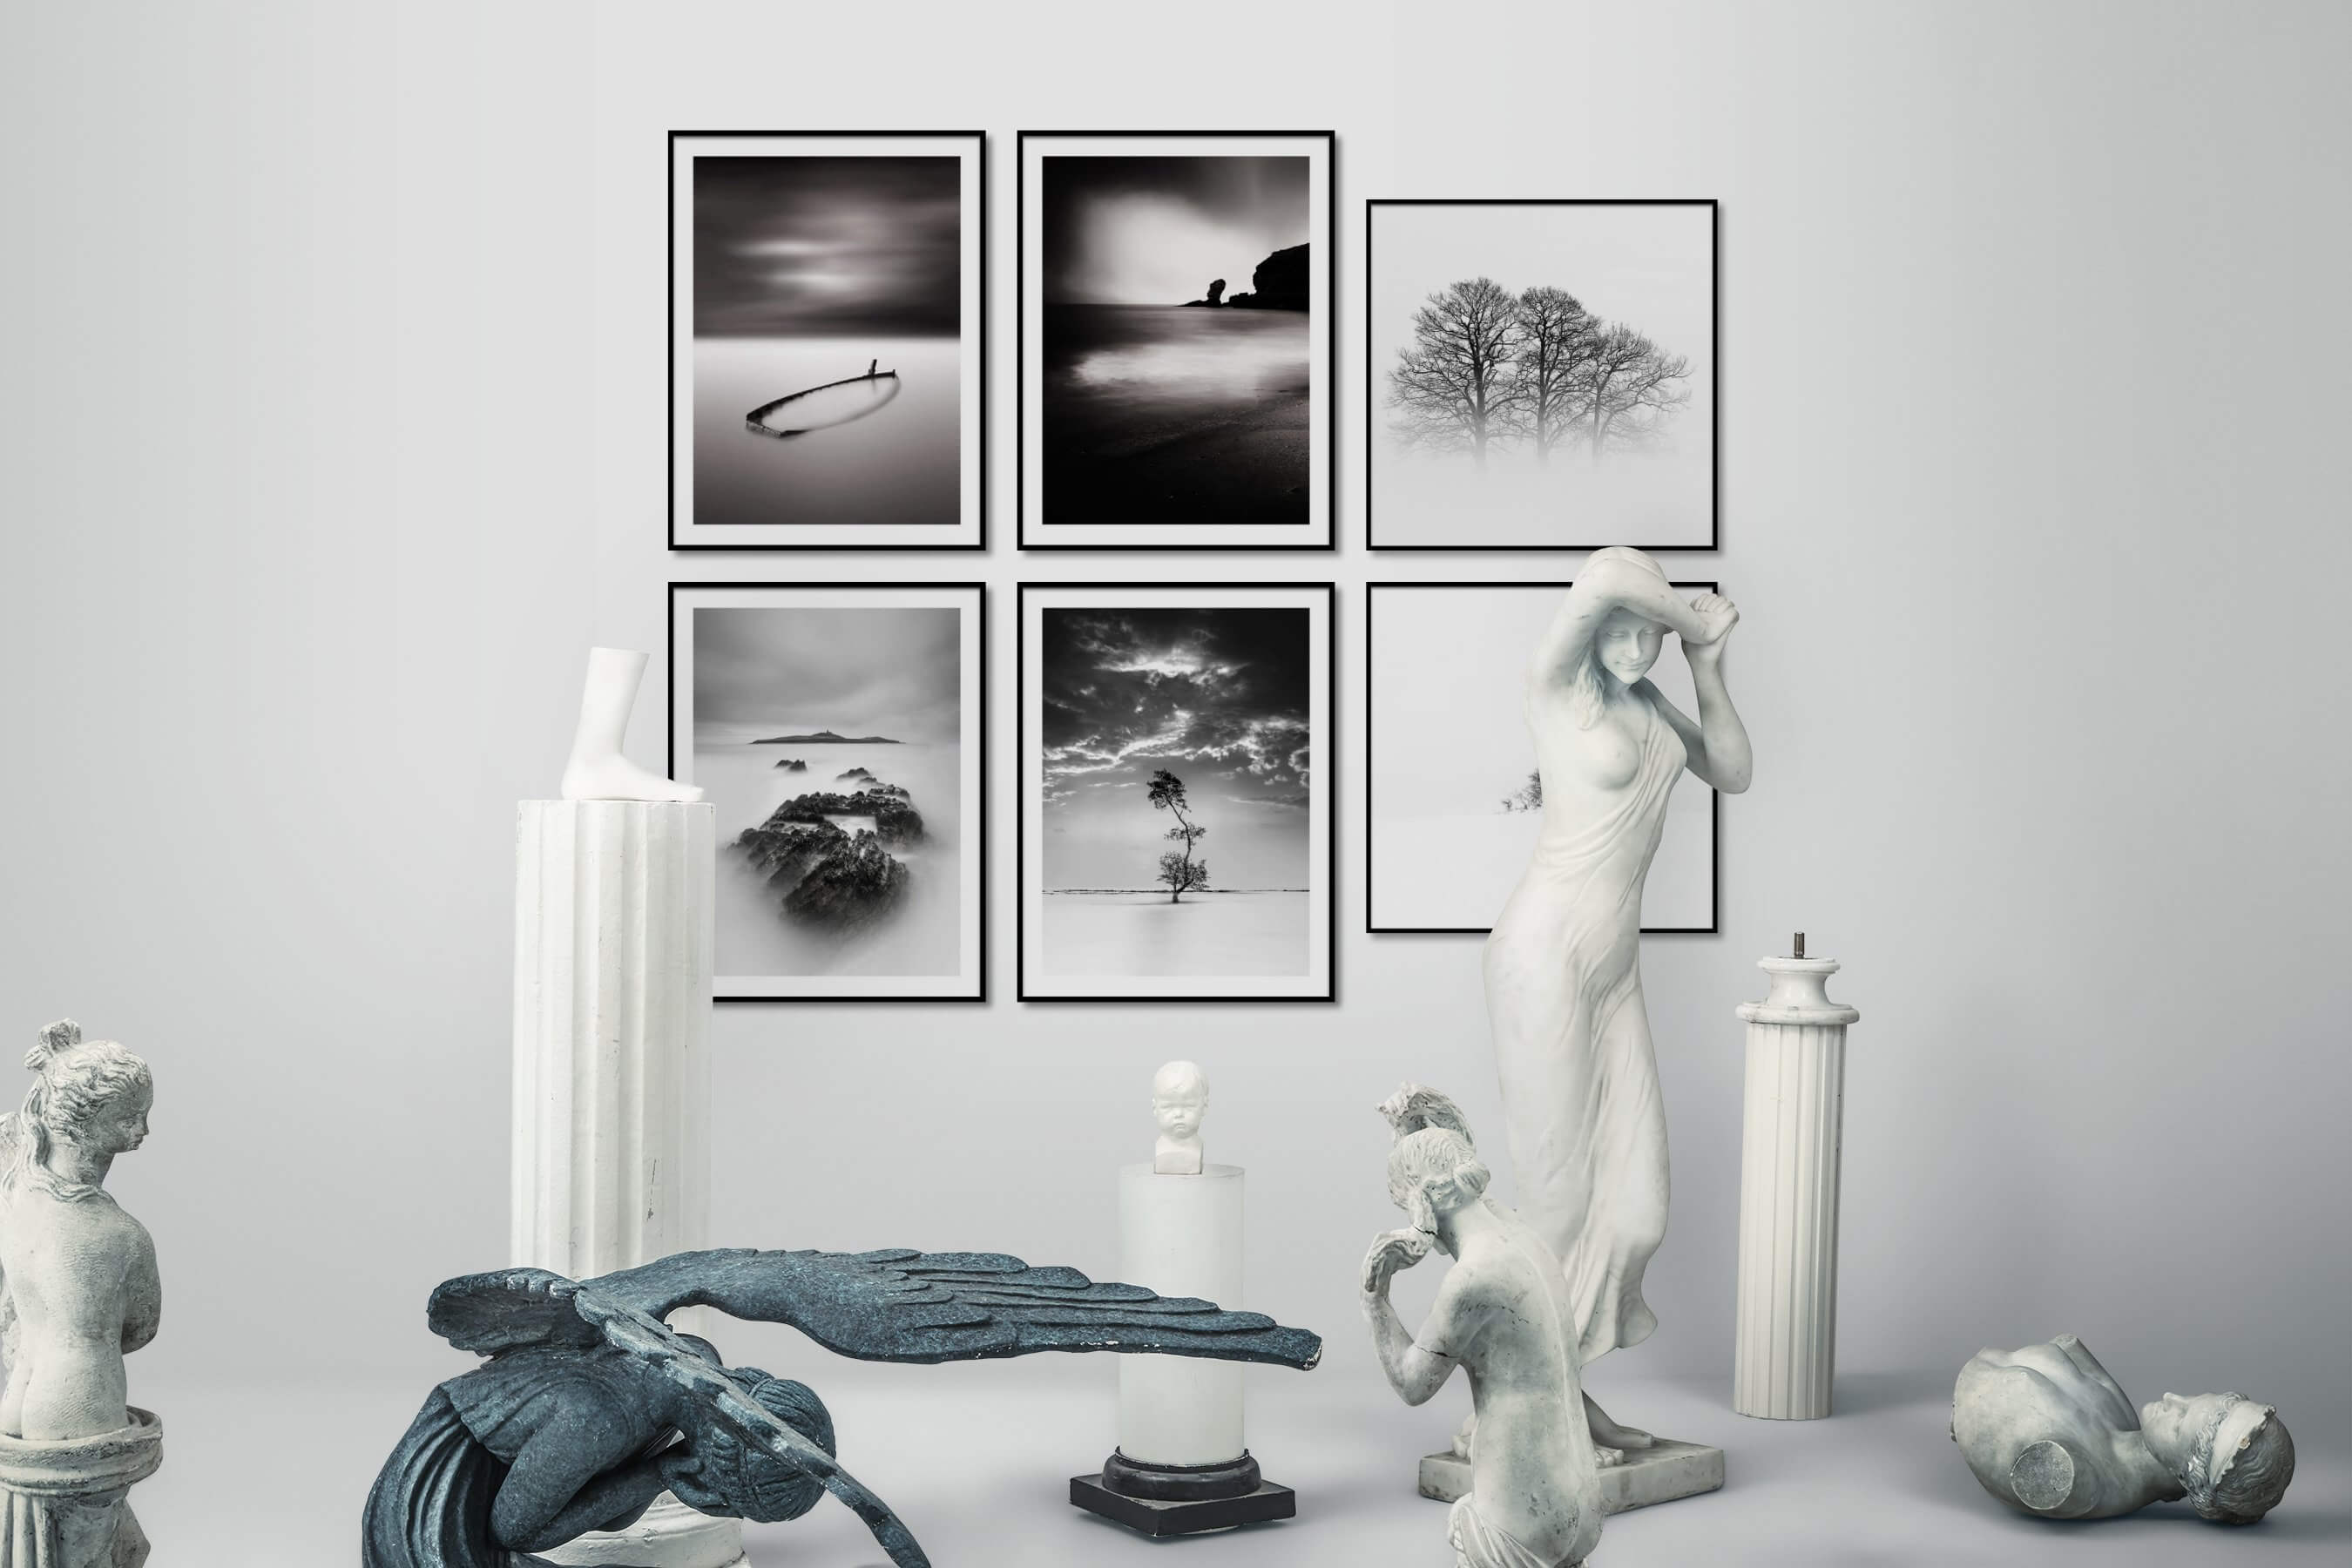 Gallery wall idea with six framed pictures arranged on a wall depicting For the Minimalist, Beach & Water, Mindfulness, Black & White, Bright Tones, Nature, and Country Life